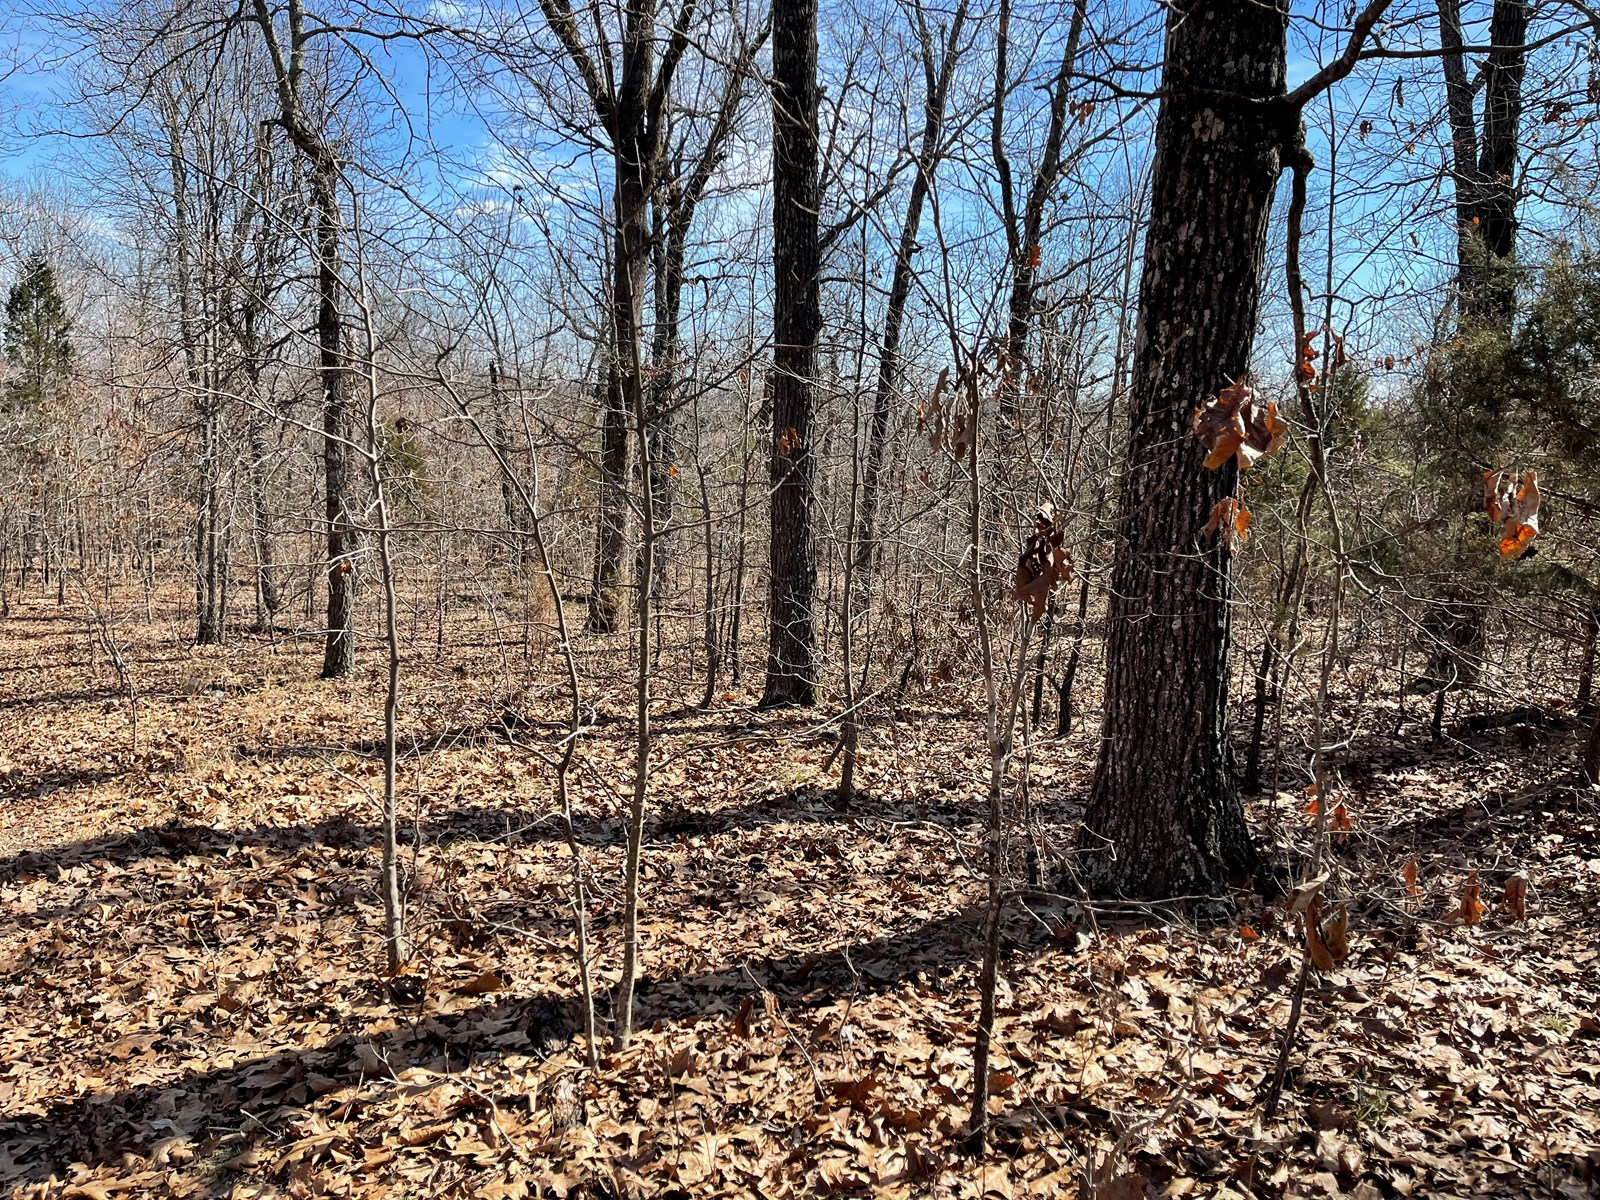 Wooded Property For Sale in Fulton County Arkansas